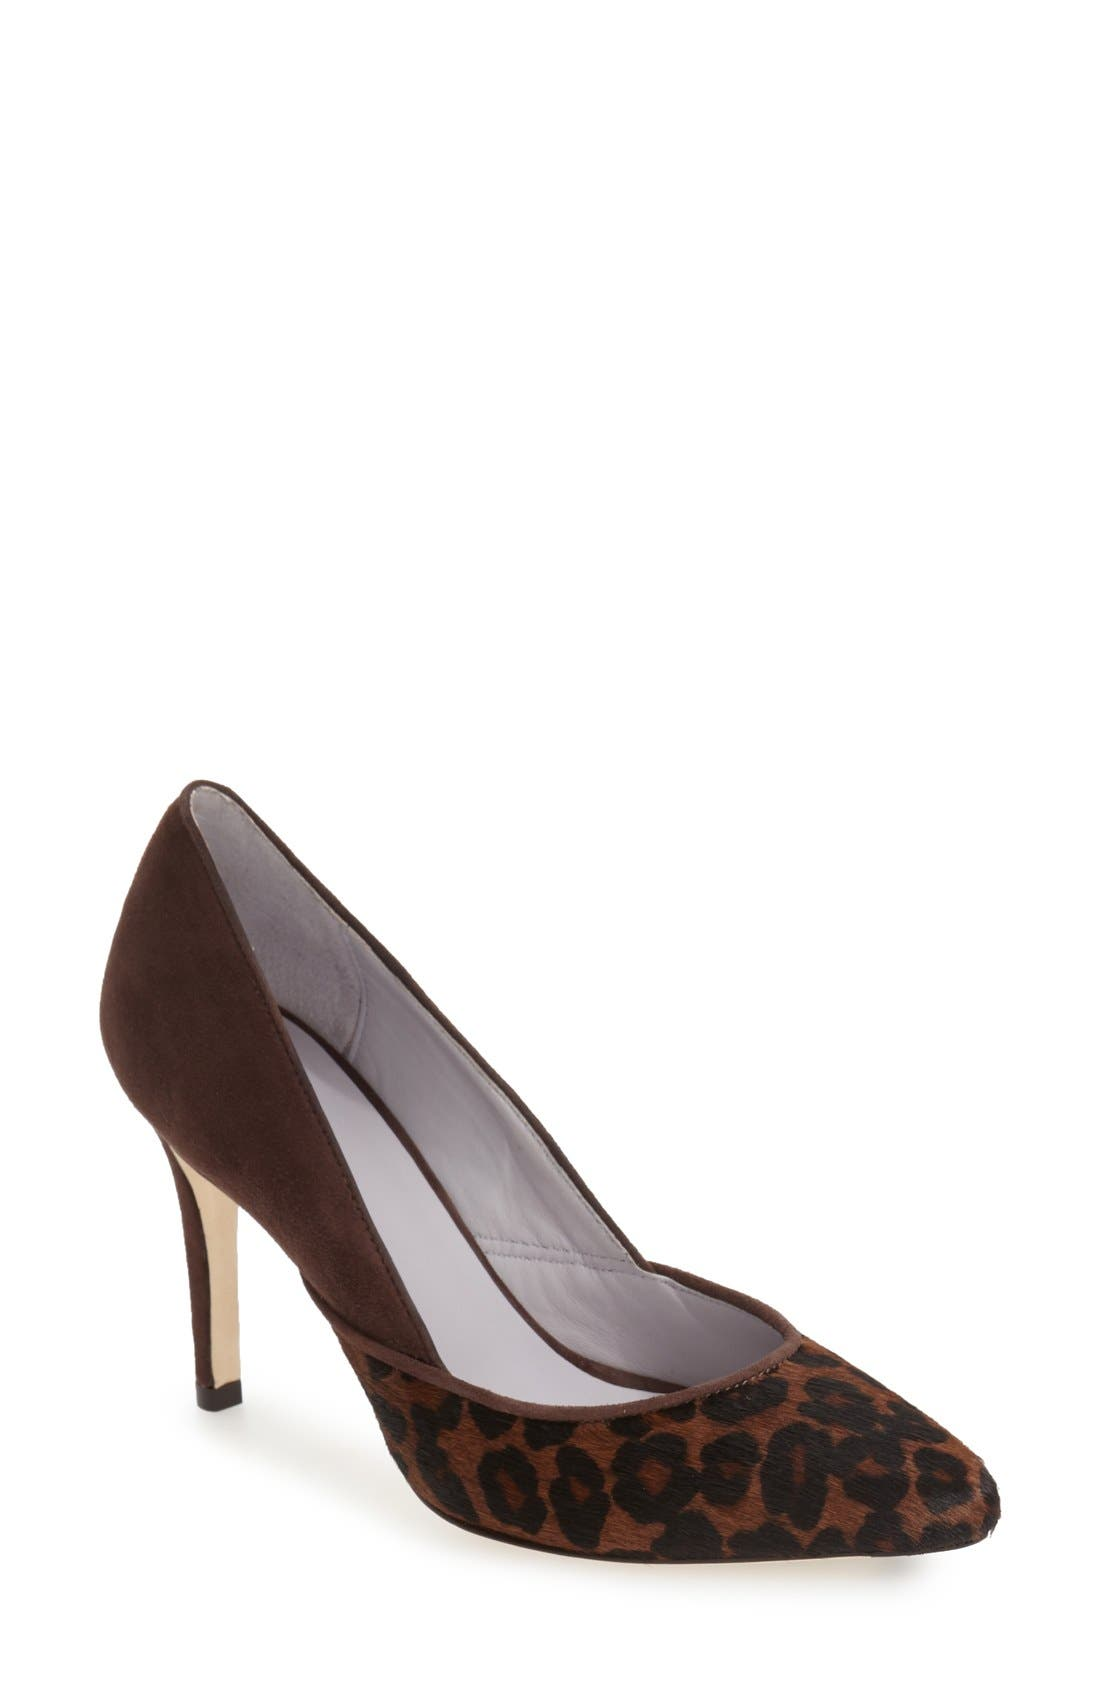 'Vanessa' Pointy Toe Leather Pump,                             Main thumbnail 5, color,